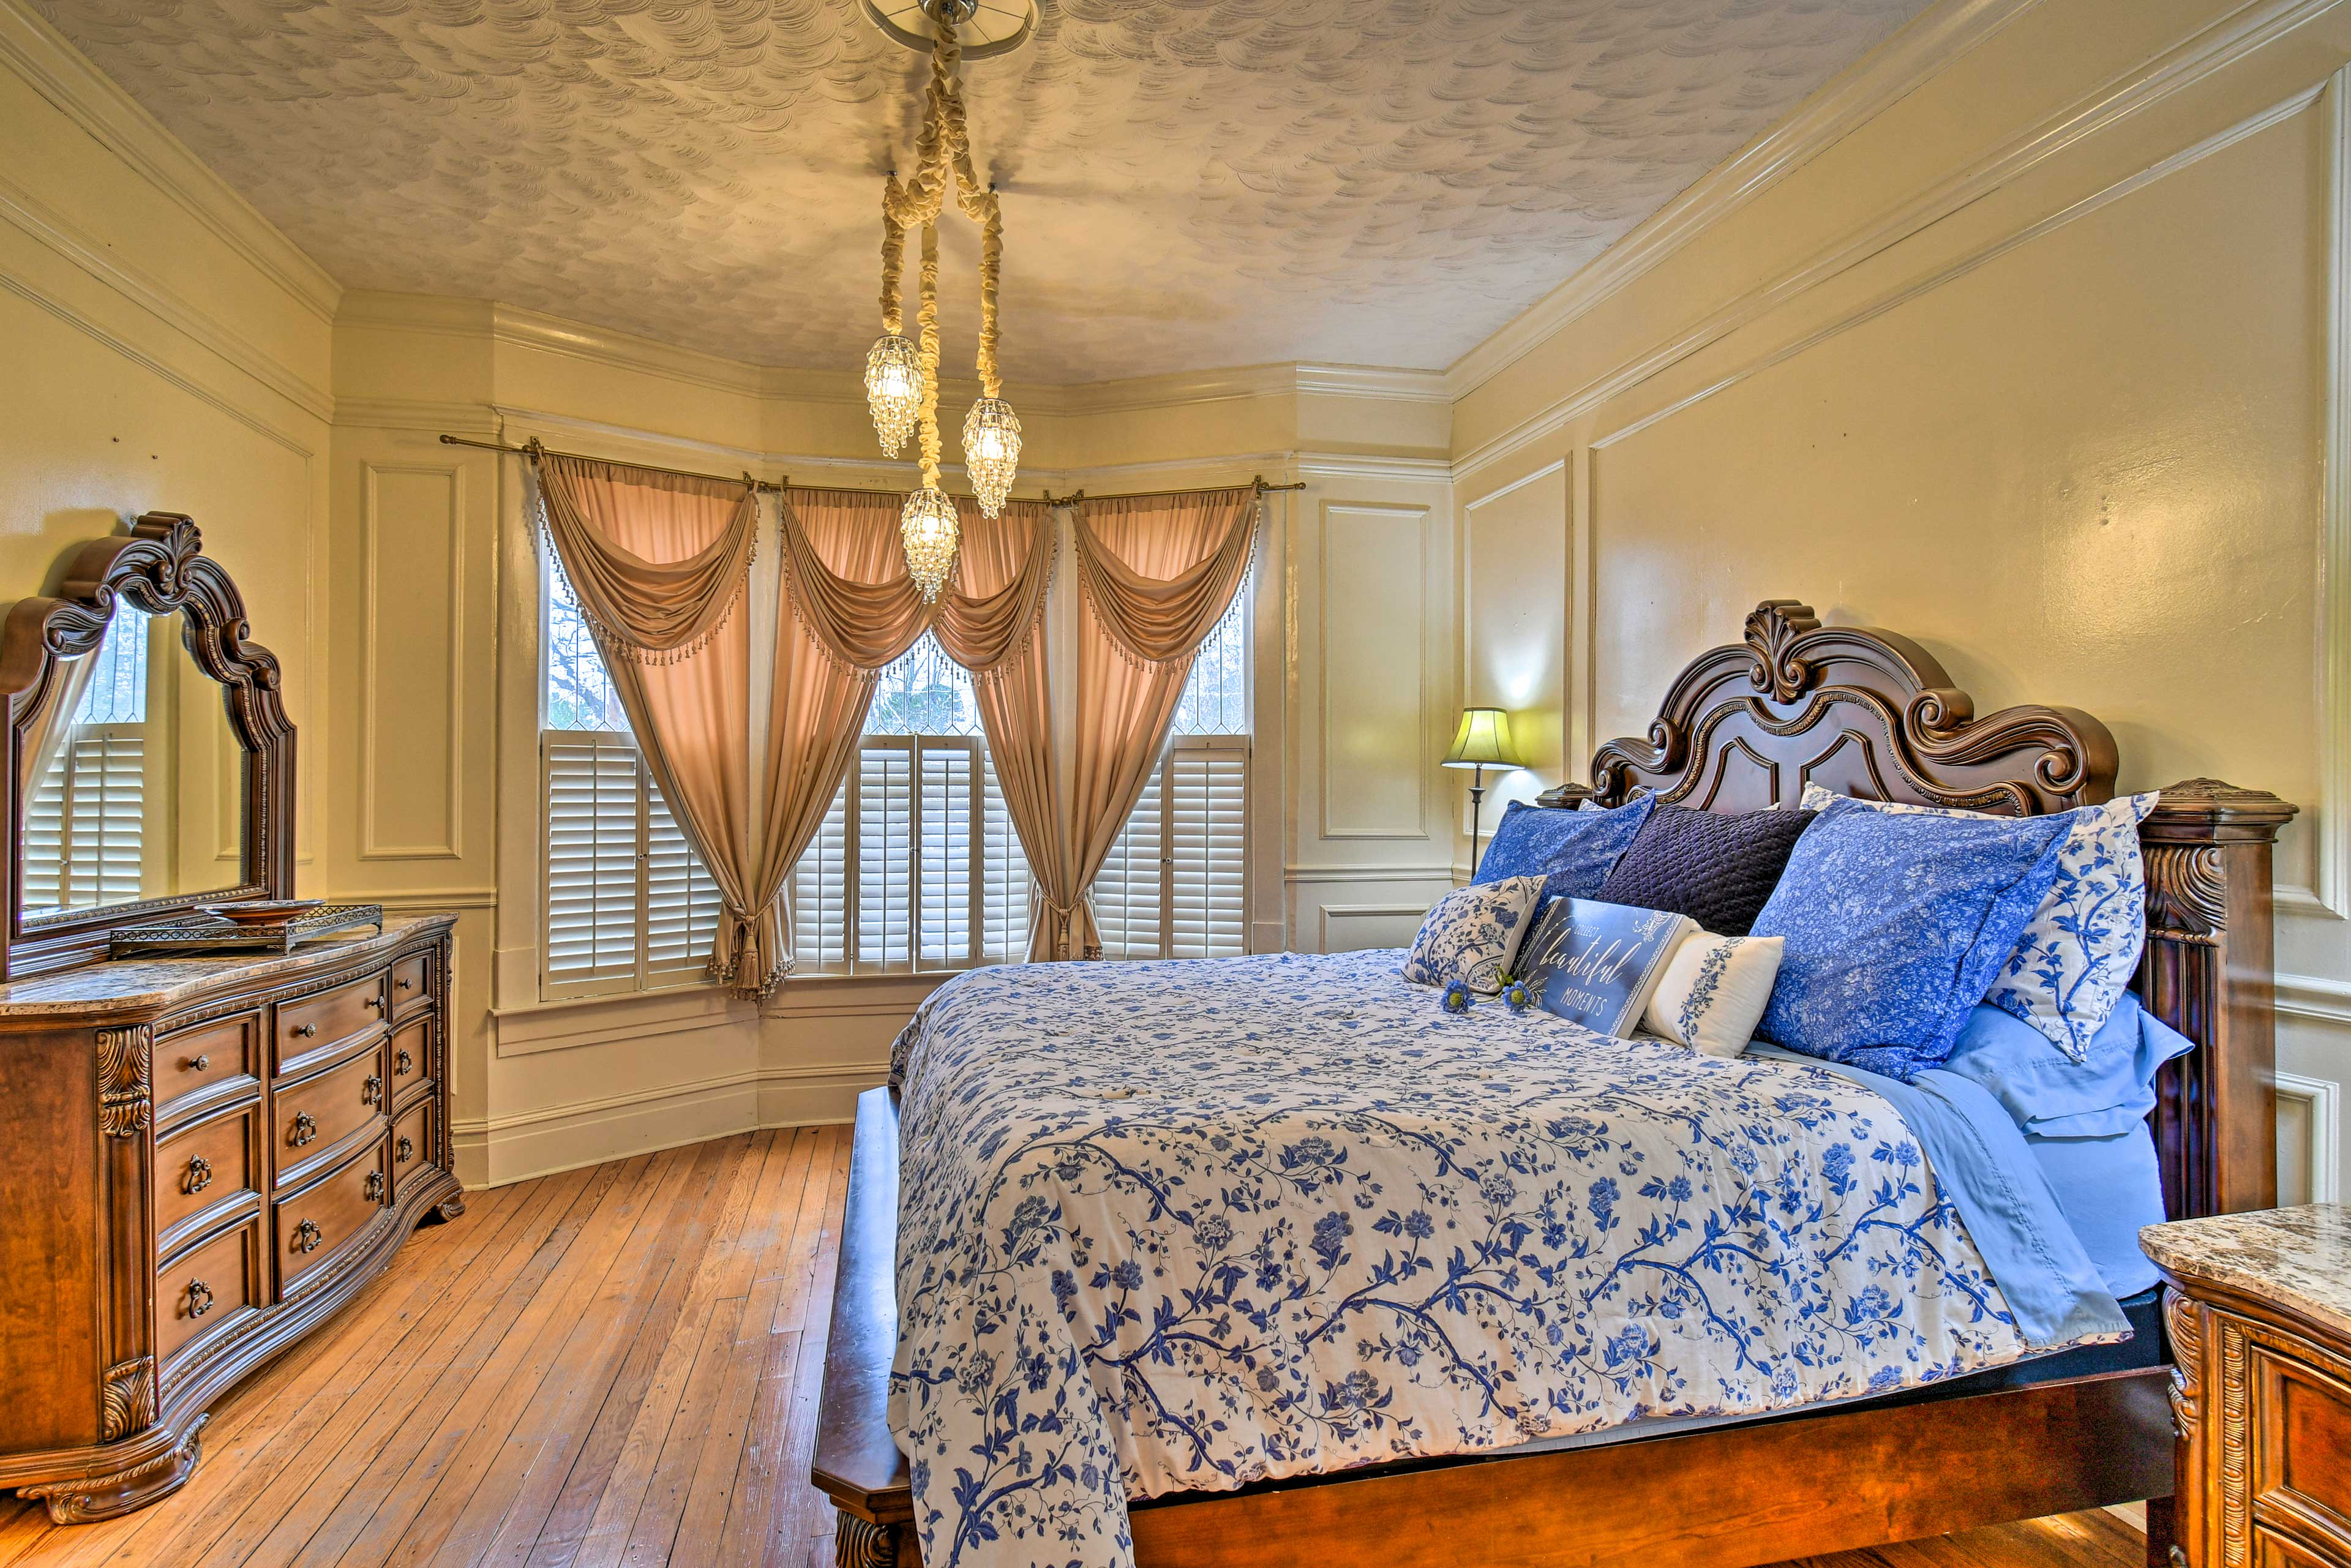 The master bedroom is adjacent to the dining room.